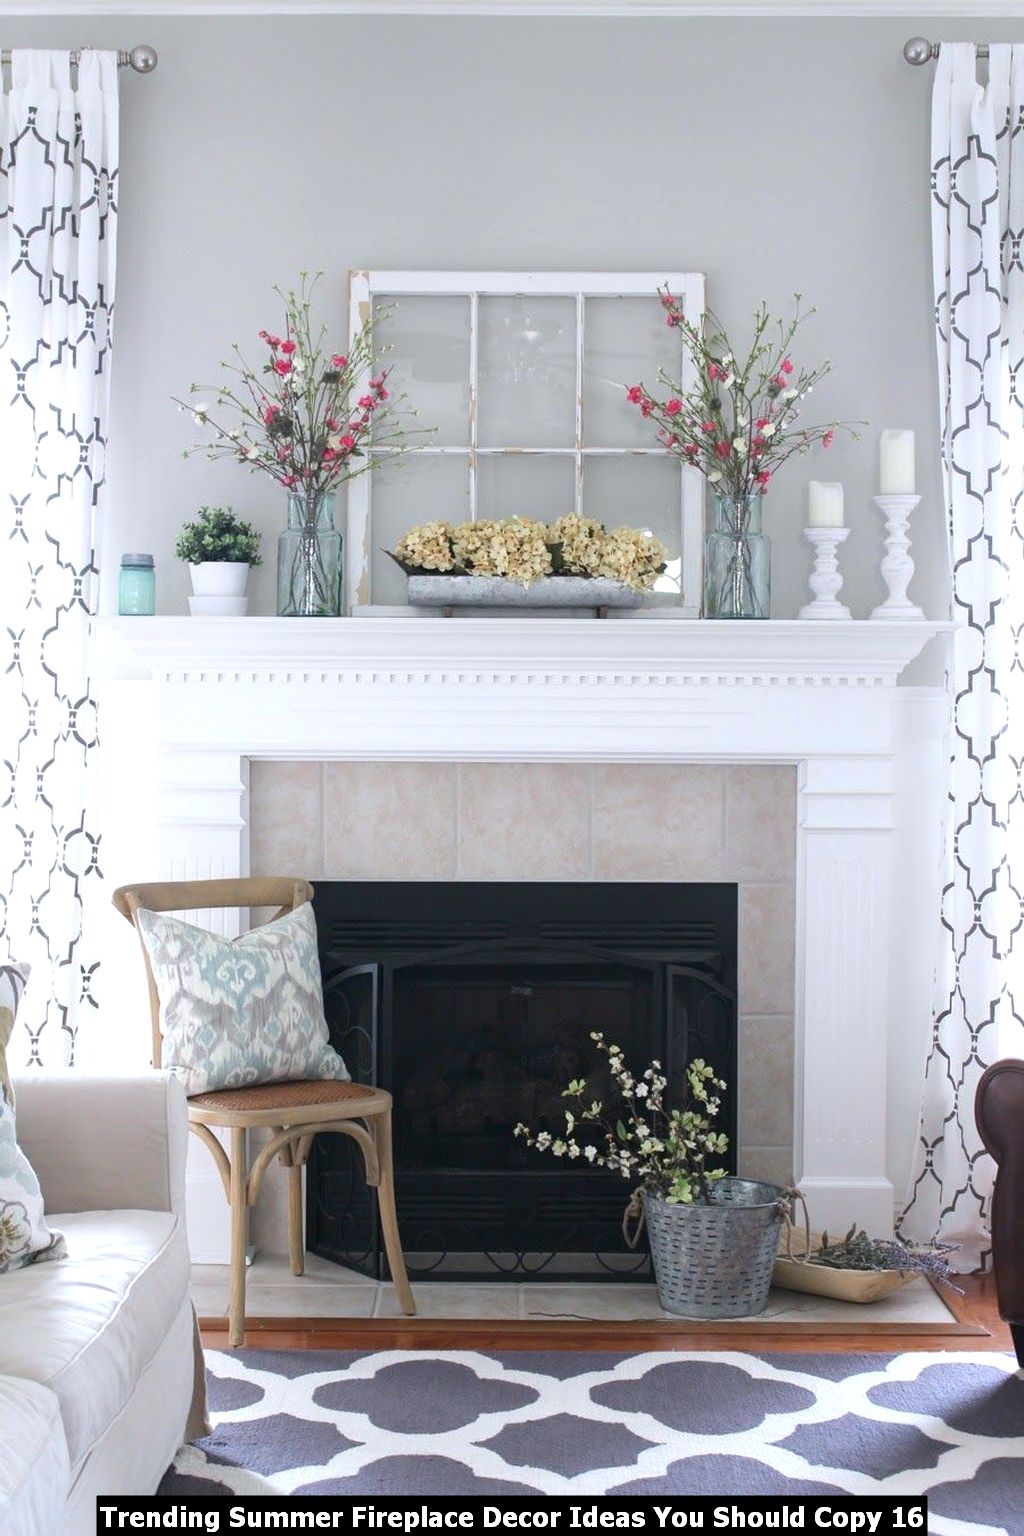 Trending Summer Fireplace Decor Ideas You Should Copy 16